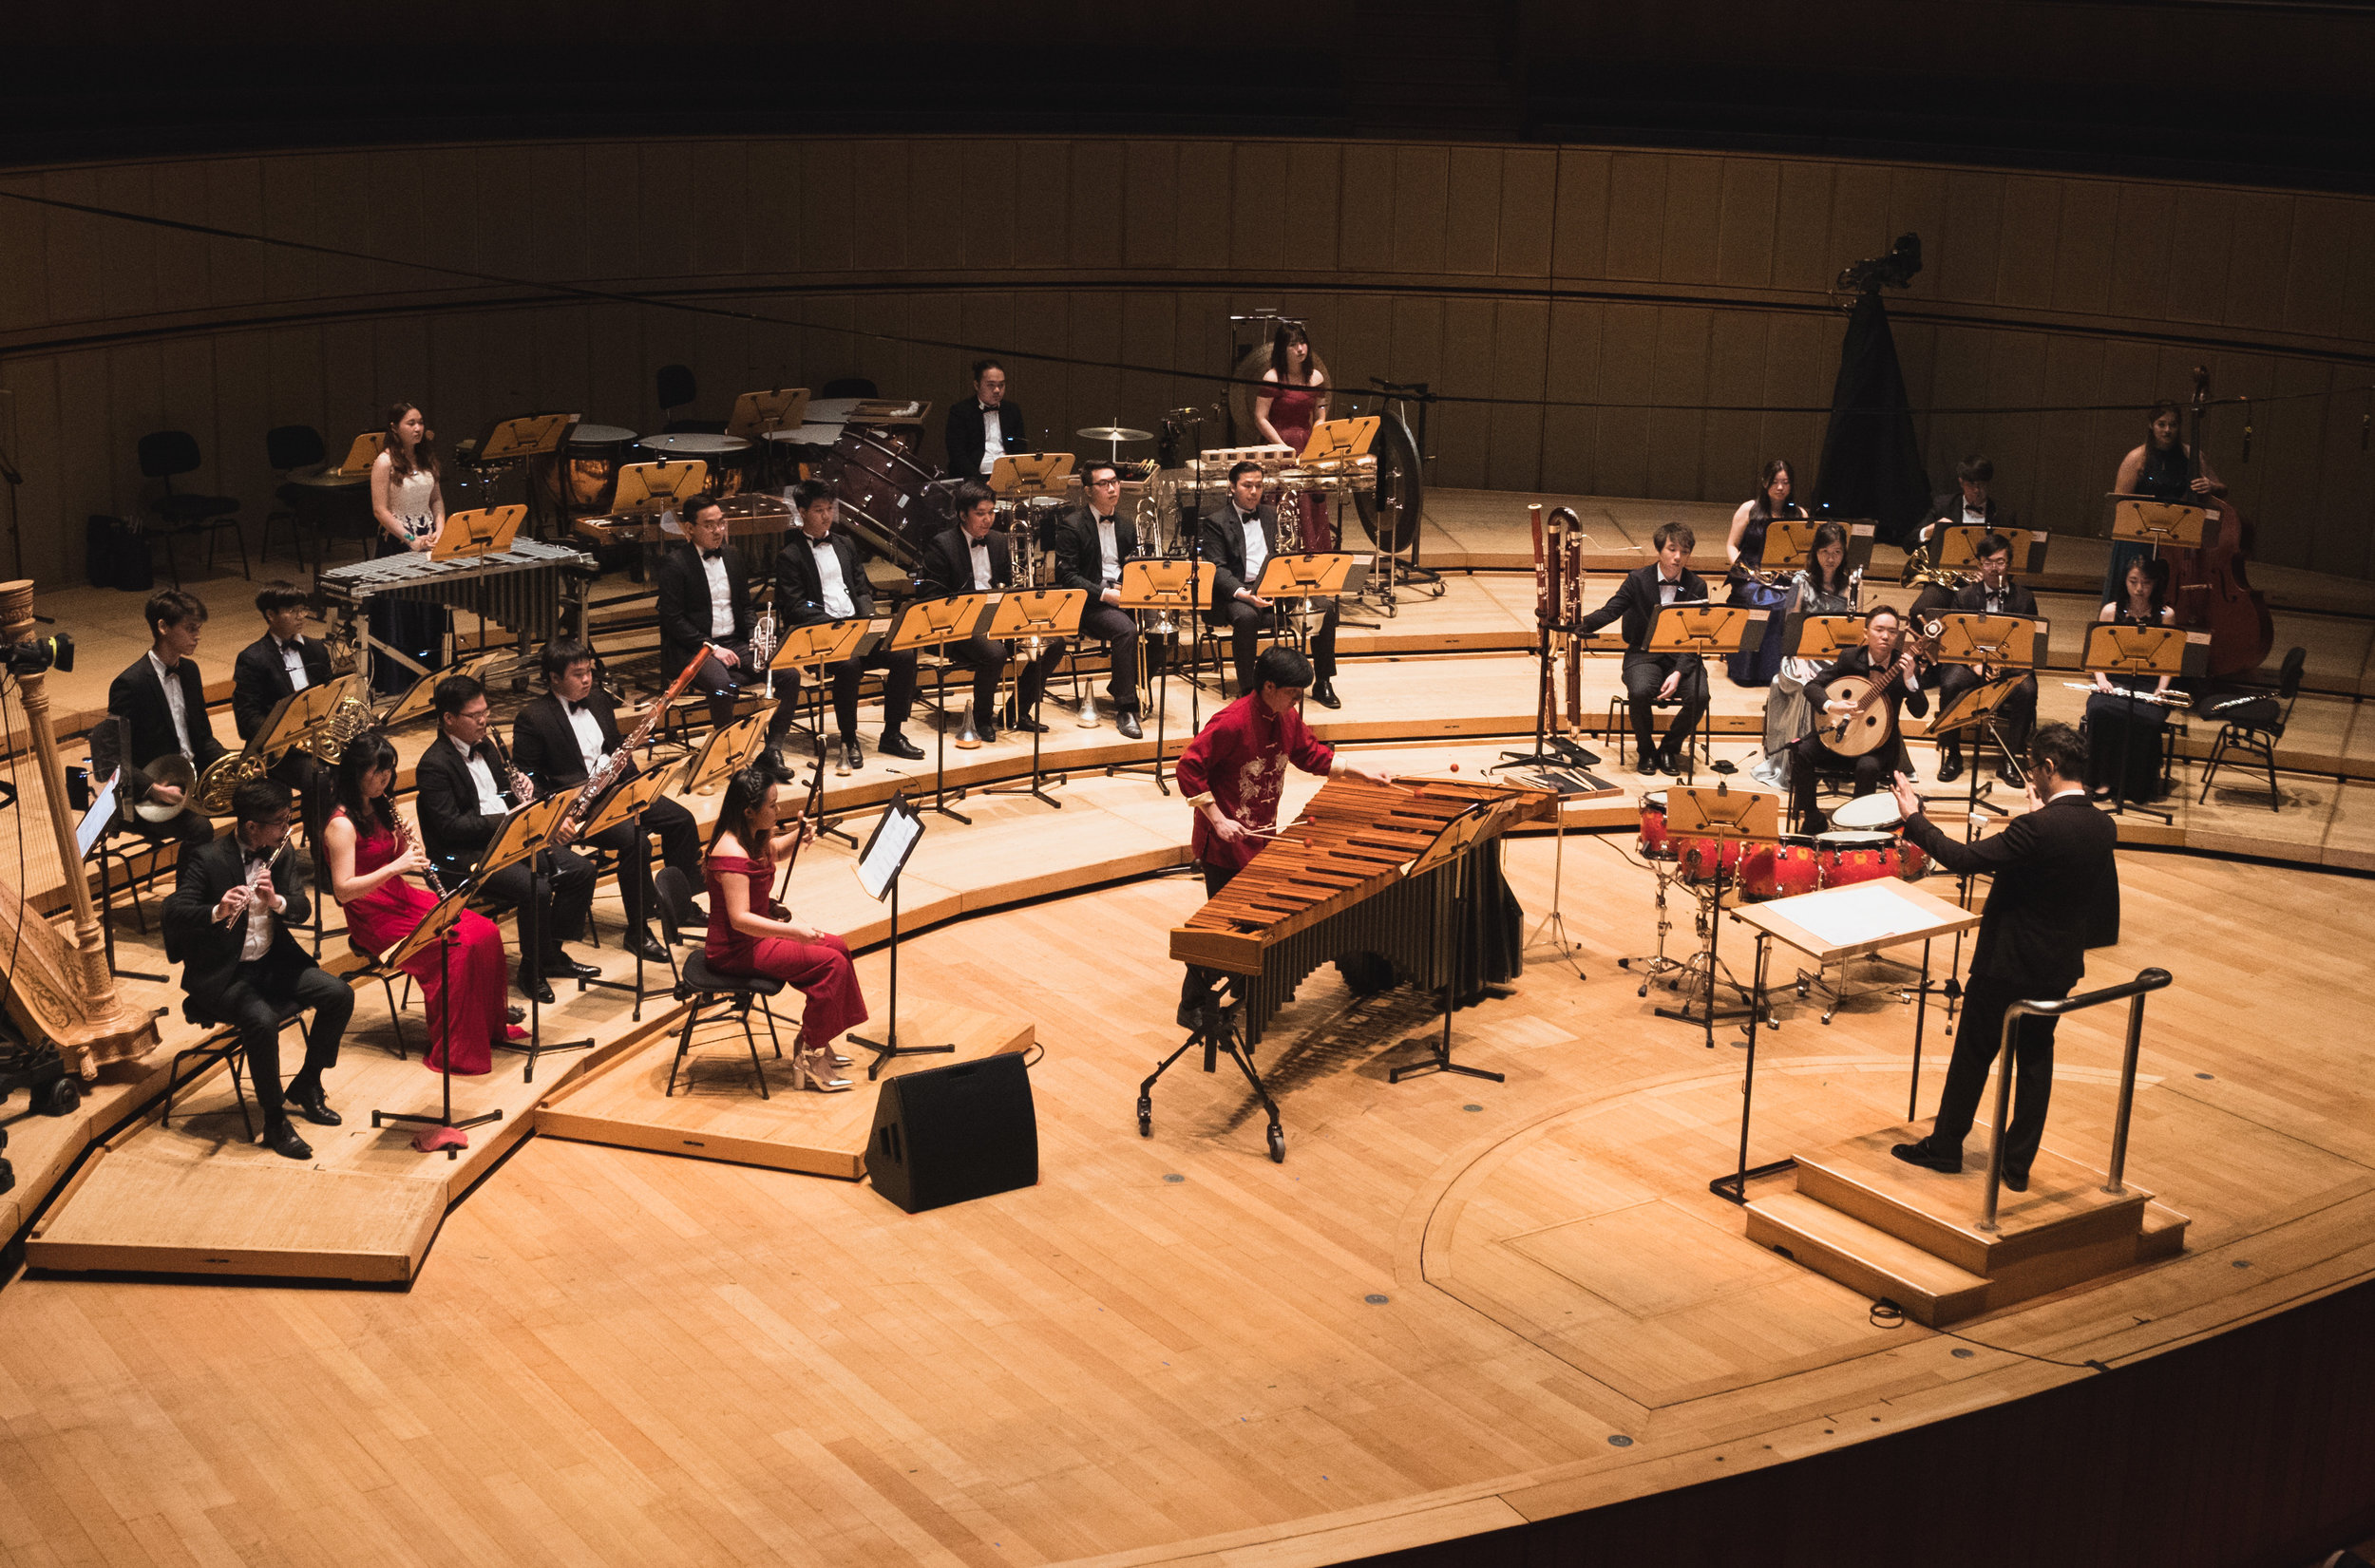 As part of the Conservatory Orchestra's Korea tour, Sulwyn (on right, holding zhongruan) was one of three soloists premiering a work by Asst Prof Chen Zhangyi for Chinese instruments and ensemble.